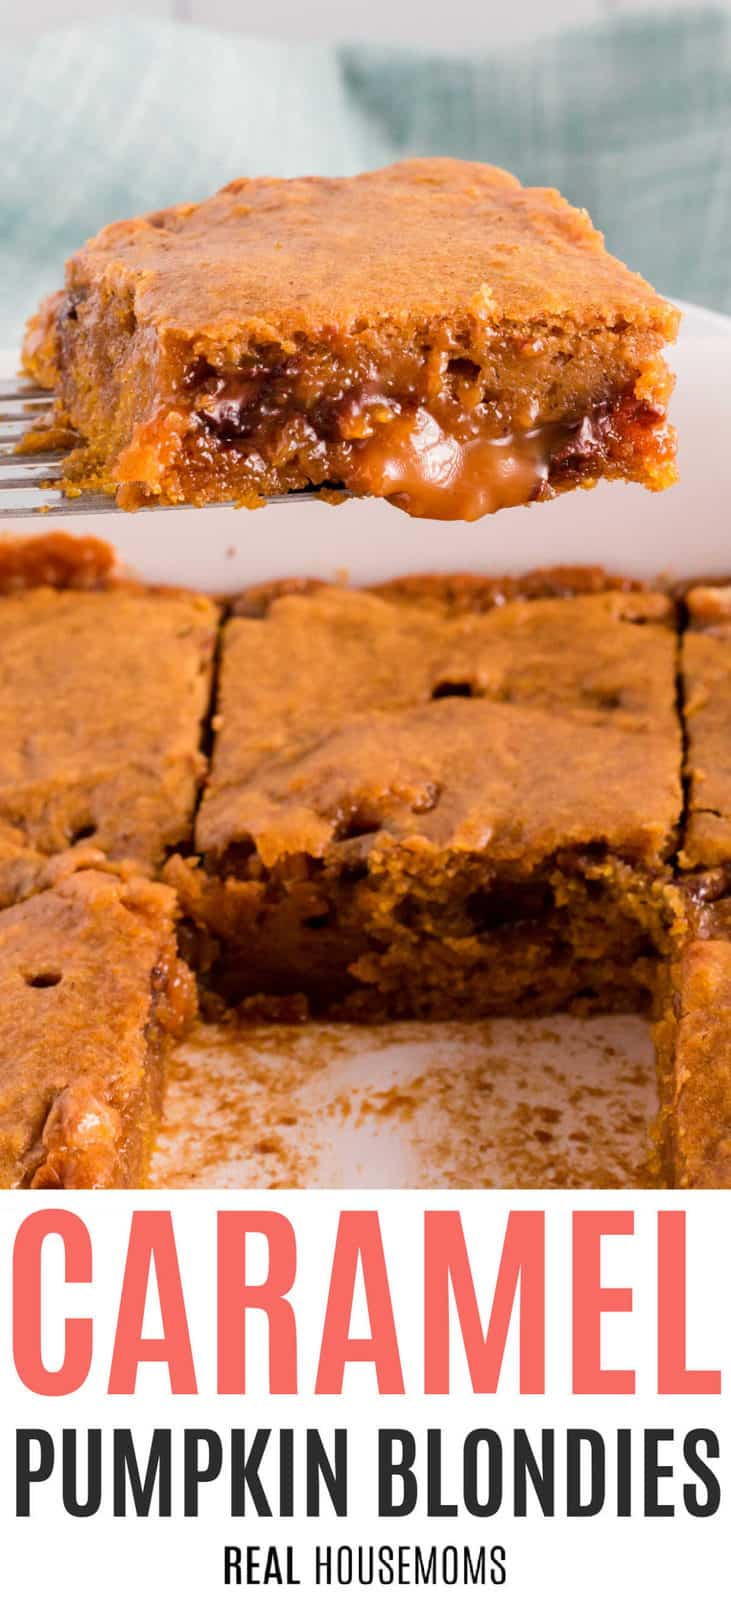 Hero Pic of Caramel Pumpkin Blondies, a flat spatula is holding a piece of the blondies and in the background is a sheet pan with additional blondies